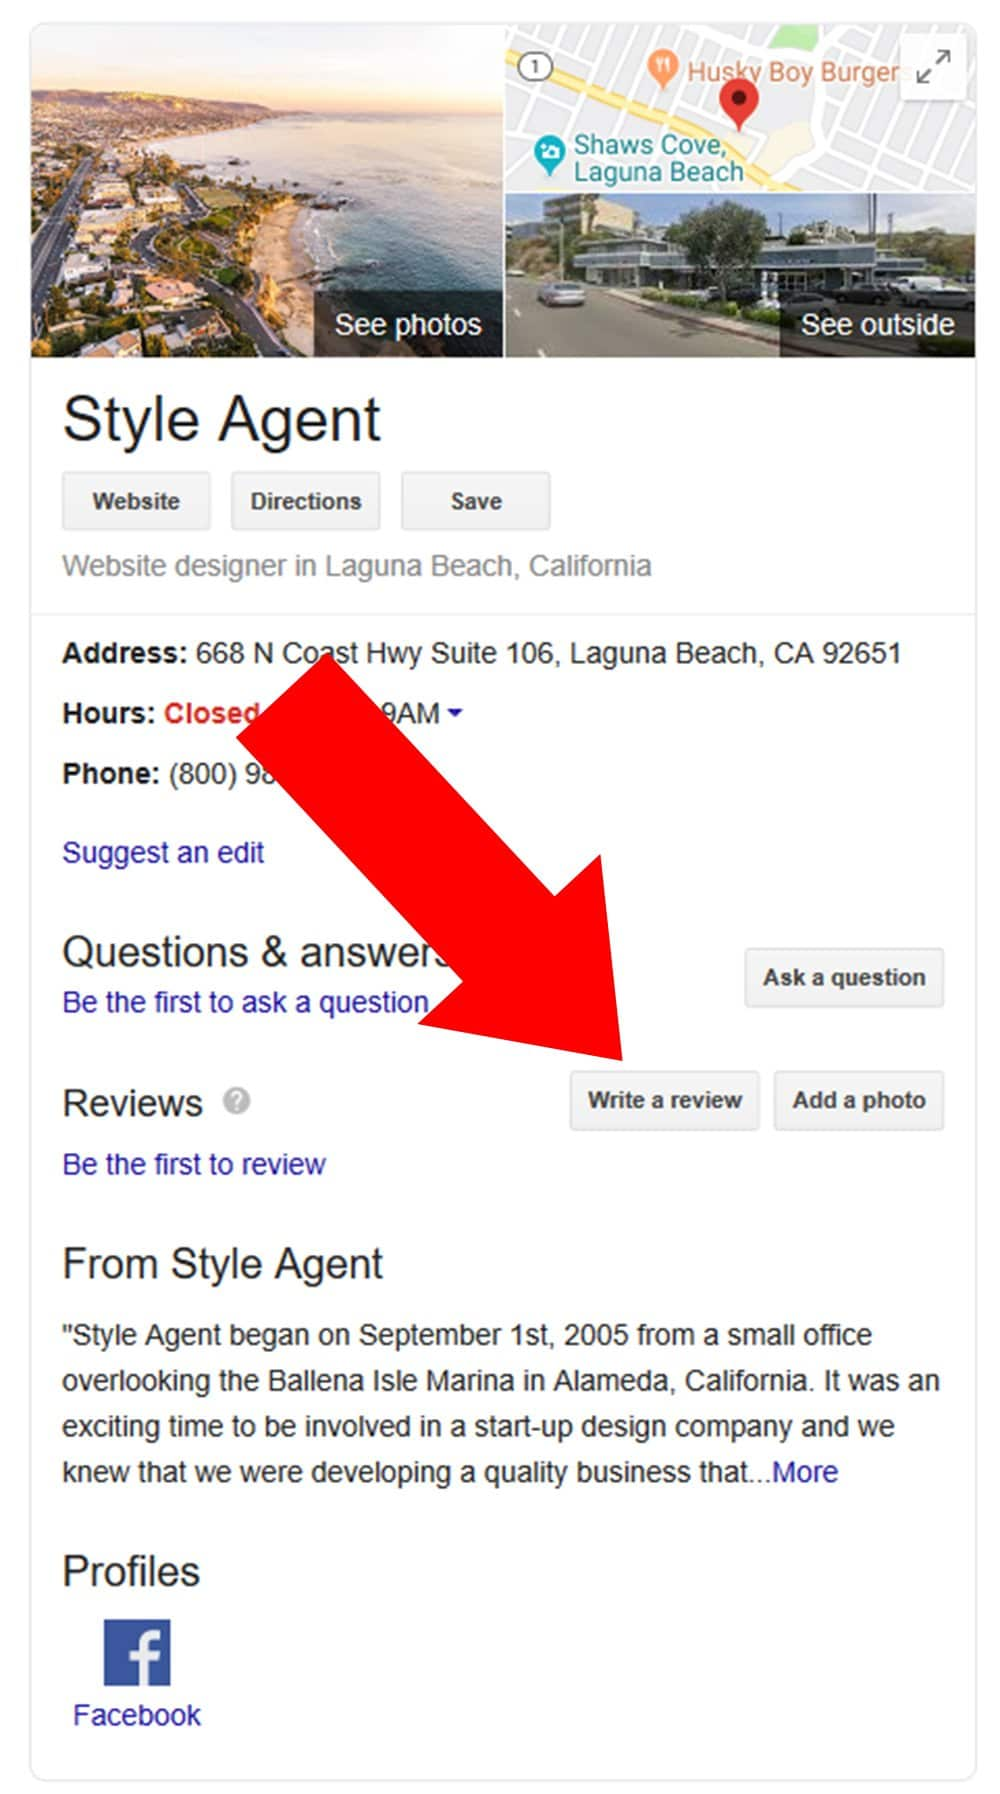 Leave a review for Style Agent on Google